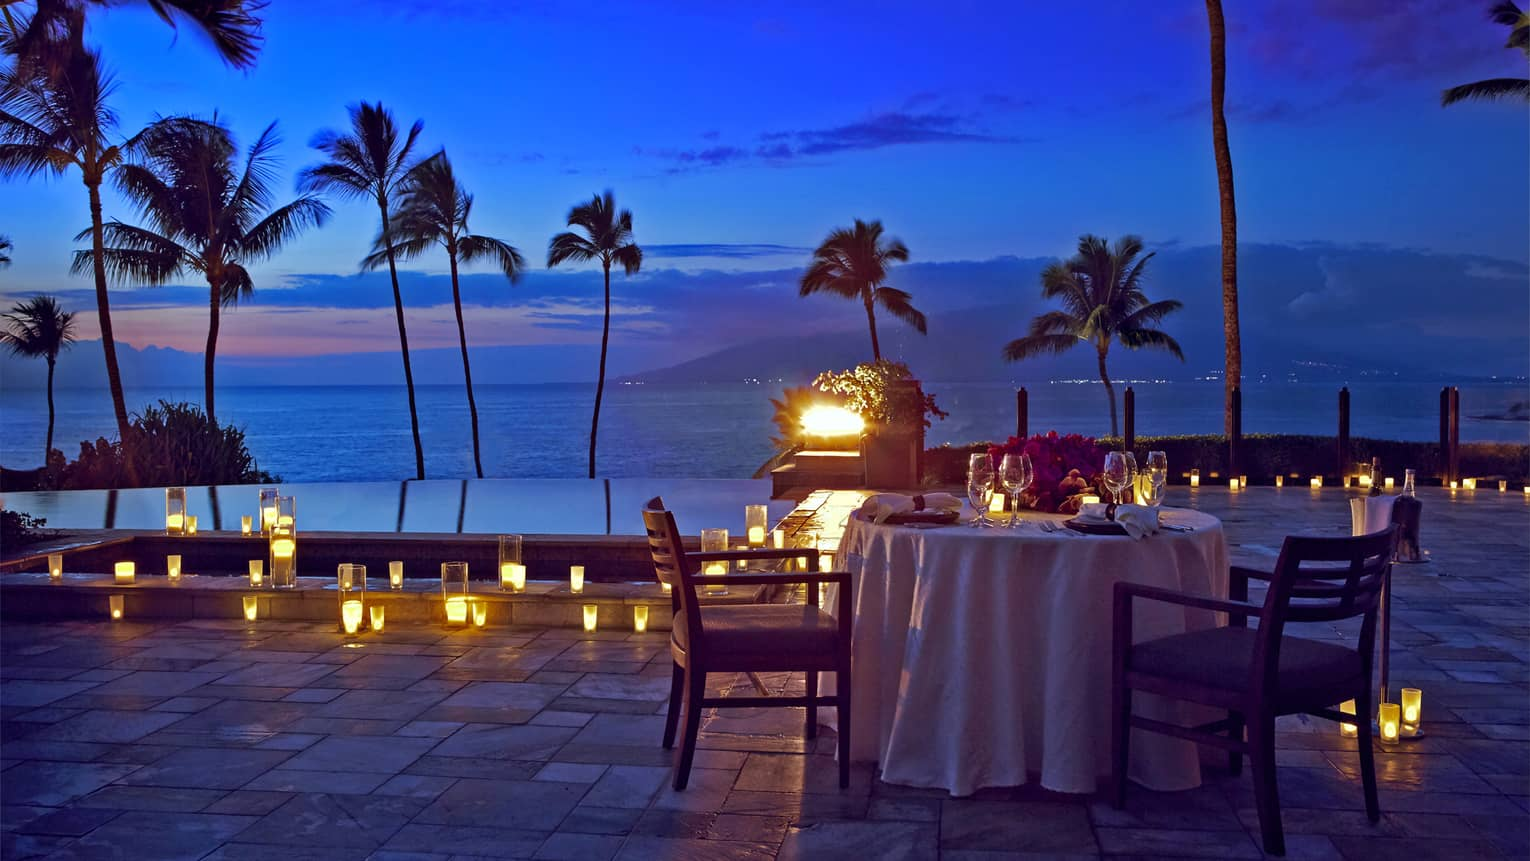 An outdoor candlelit dinner by the seaside in Maui